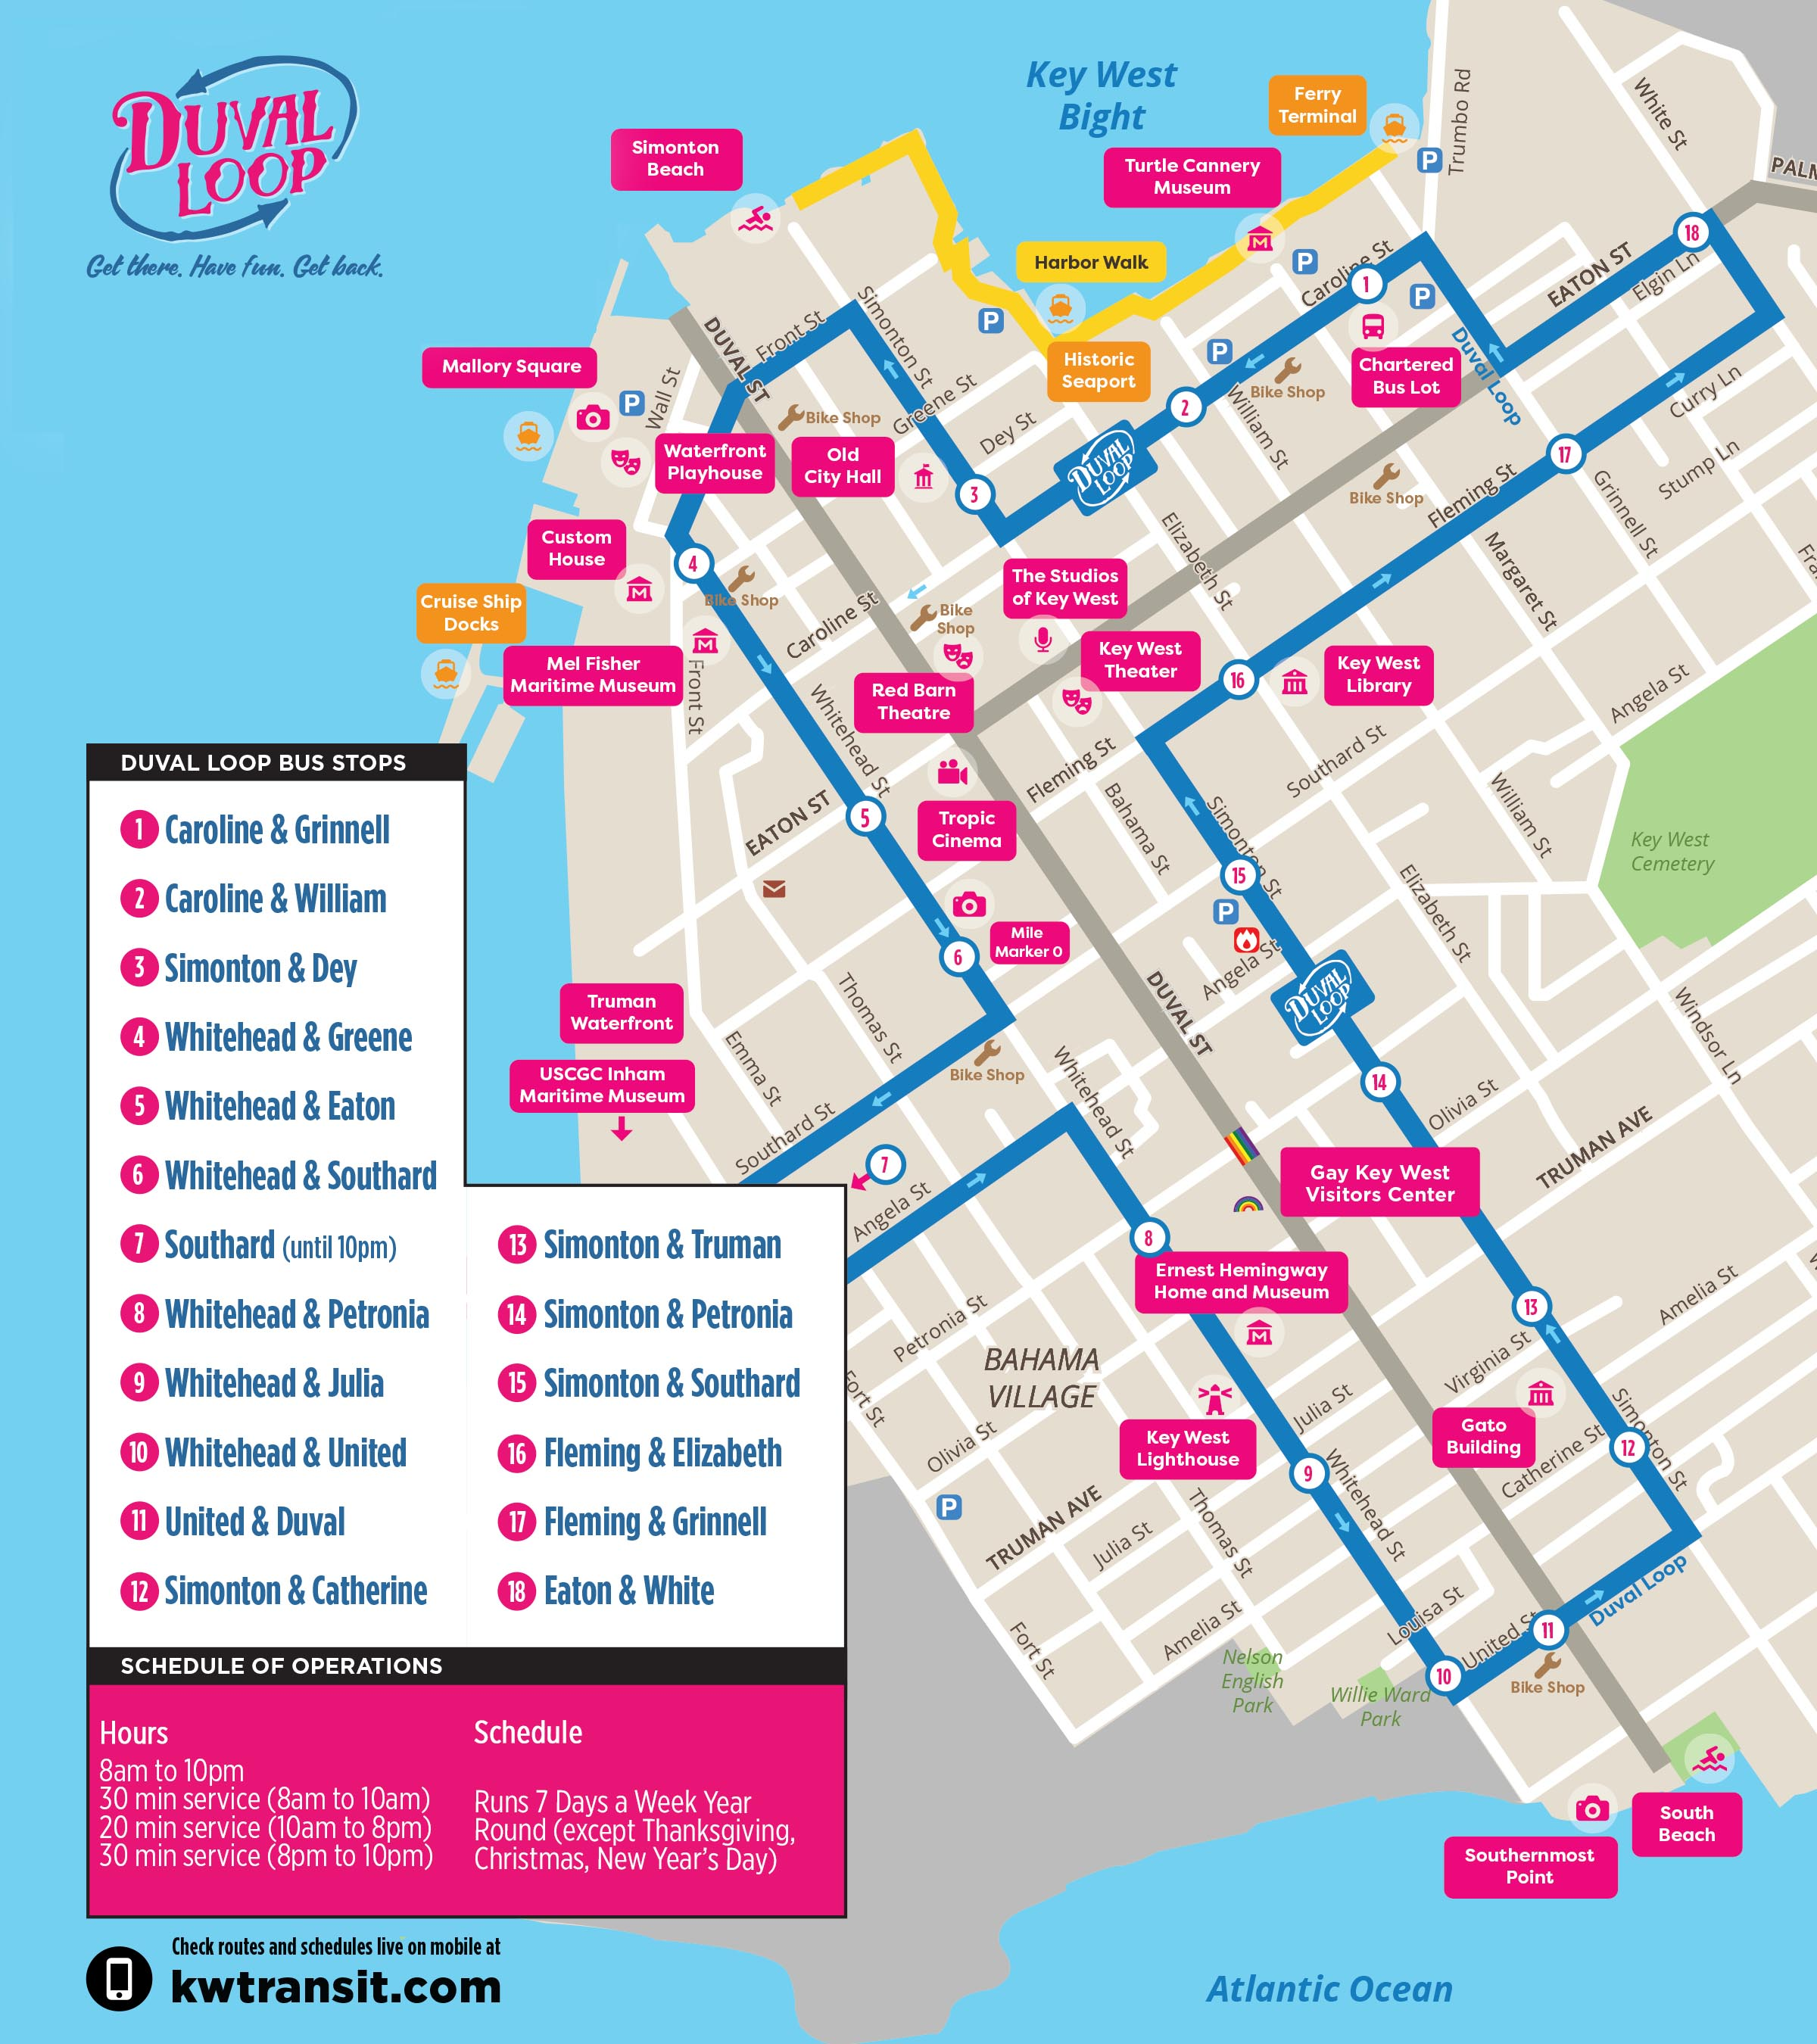 Hotel Map Of Key West Florida The Duval Bus Loop in Key West | Car Free Key West